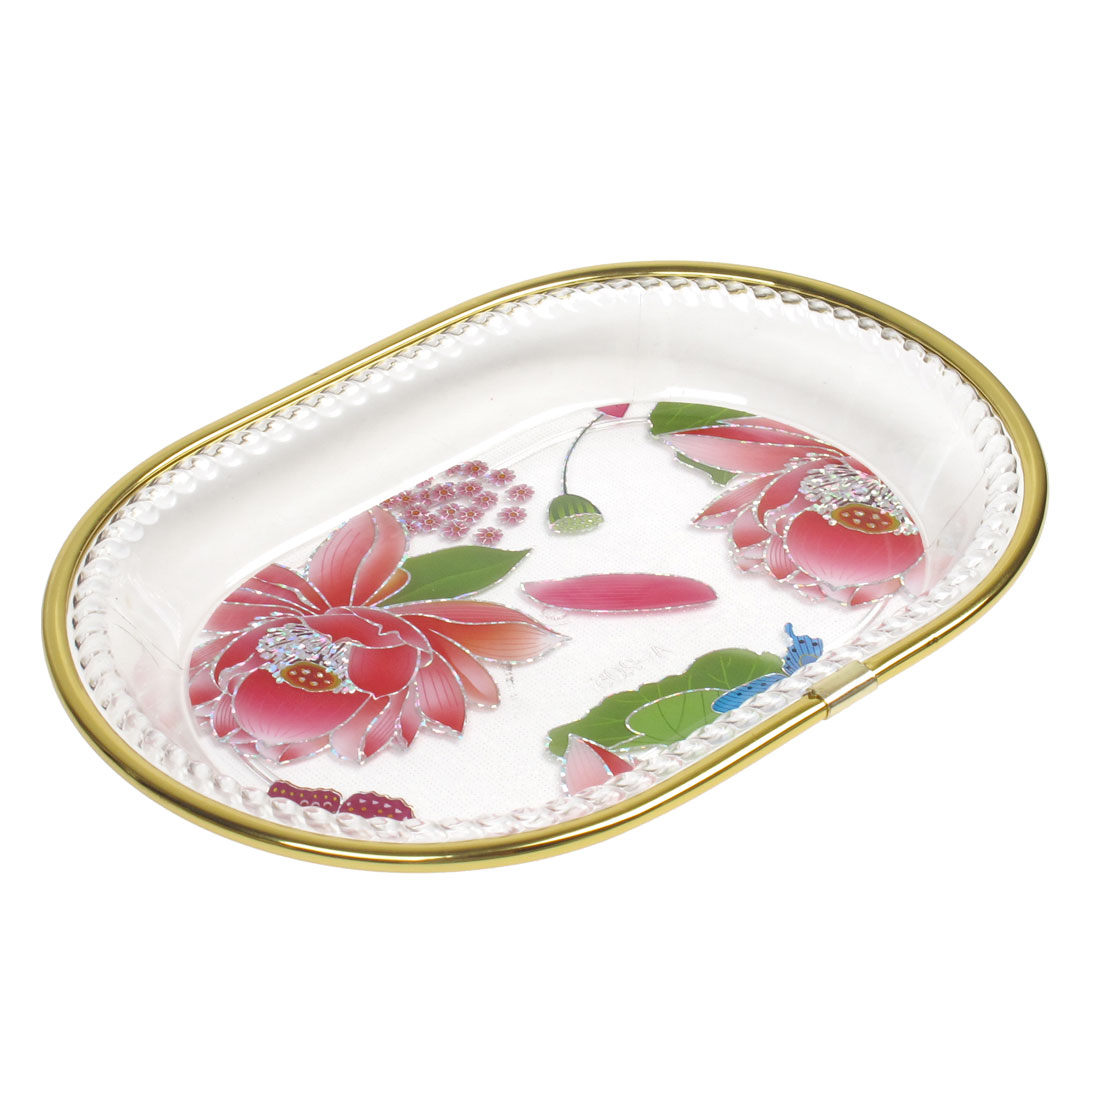 Kitchenware Oval Rectangular Design Fruit Holder Plate Bowl Red Clear Gold Tone